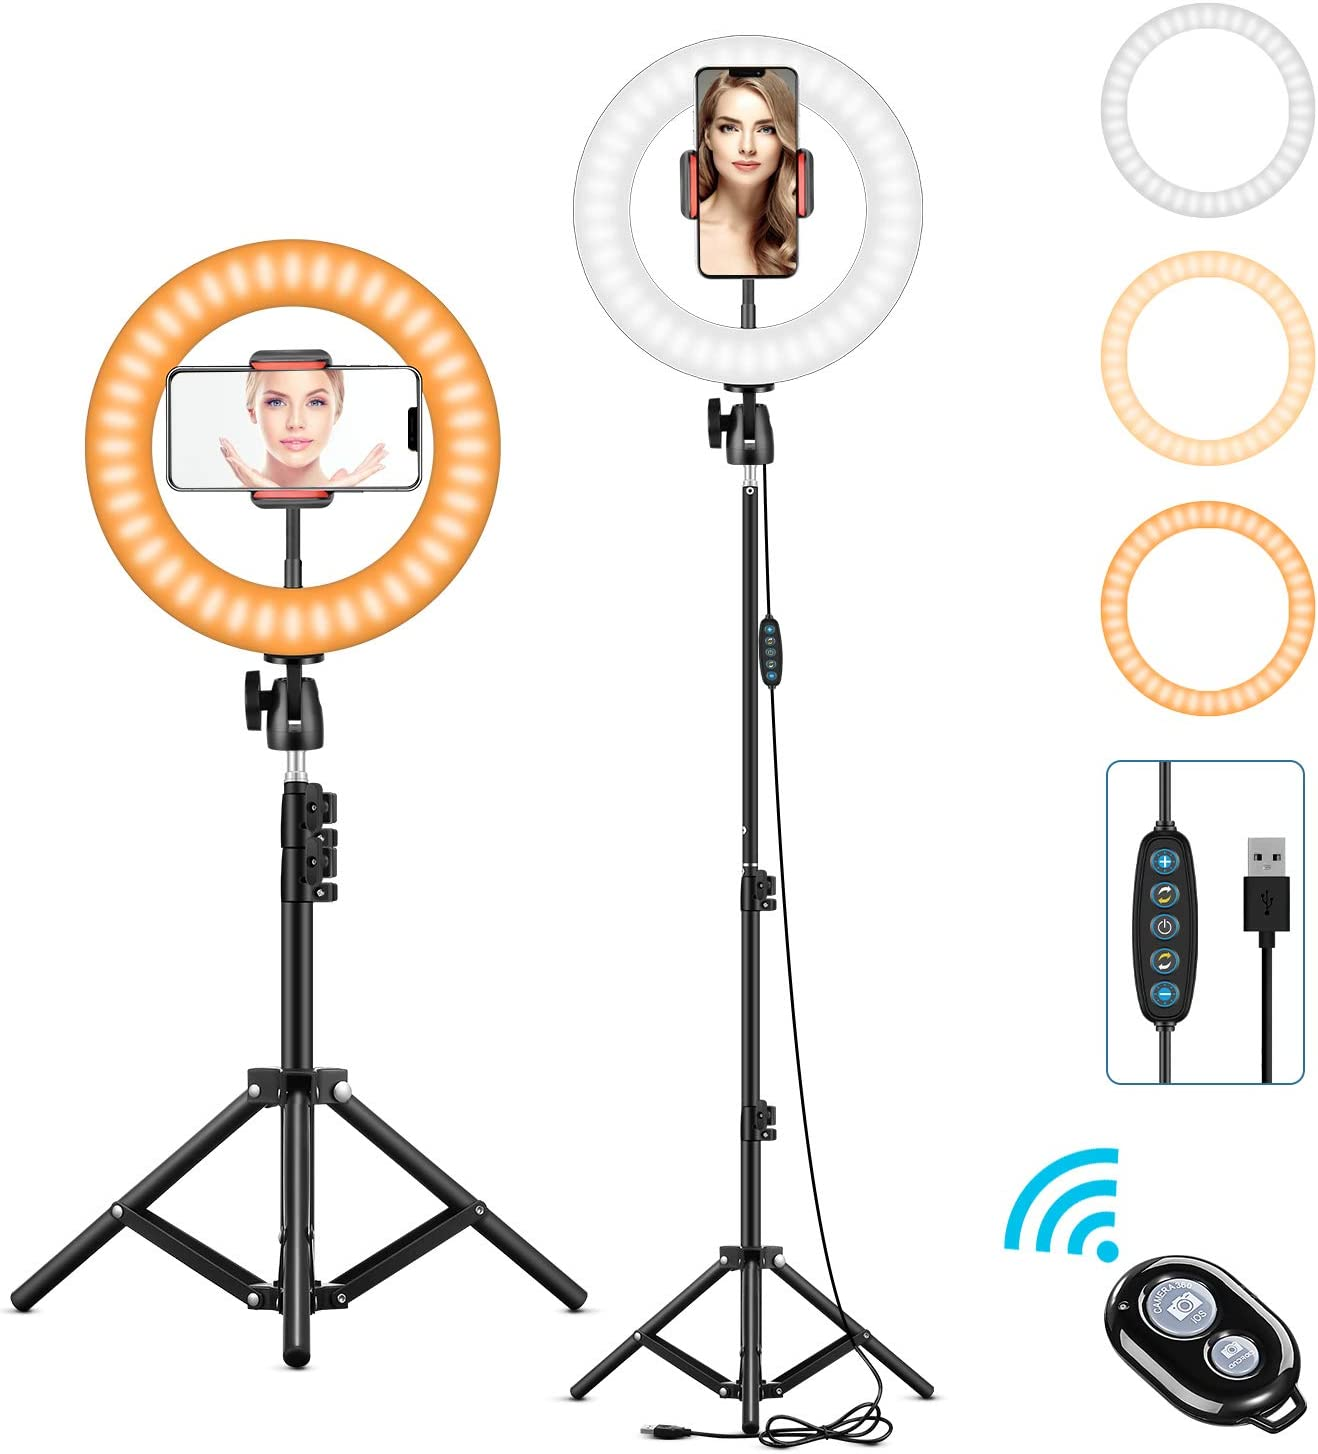 """10"""" Selfie Ring Light with Tripod Stand & Phone Holder for Makeup/YouTube/TikTok/Photography Dimmable Led Ringlight 3200K-6500K Adjustable Ring Light Tripod Compatible with iPhone & Android Phone"""